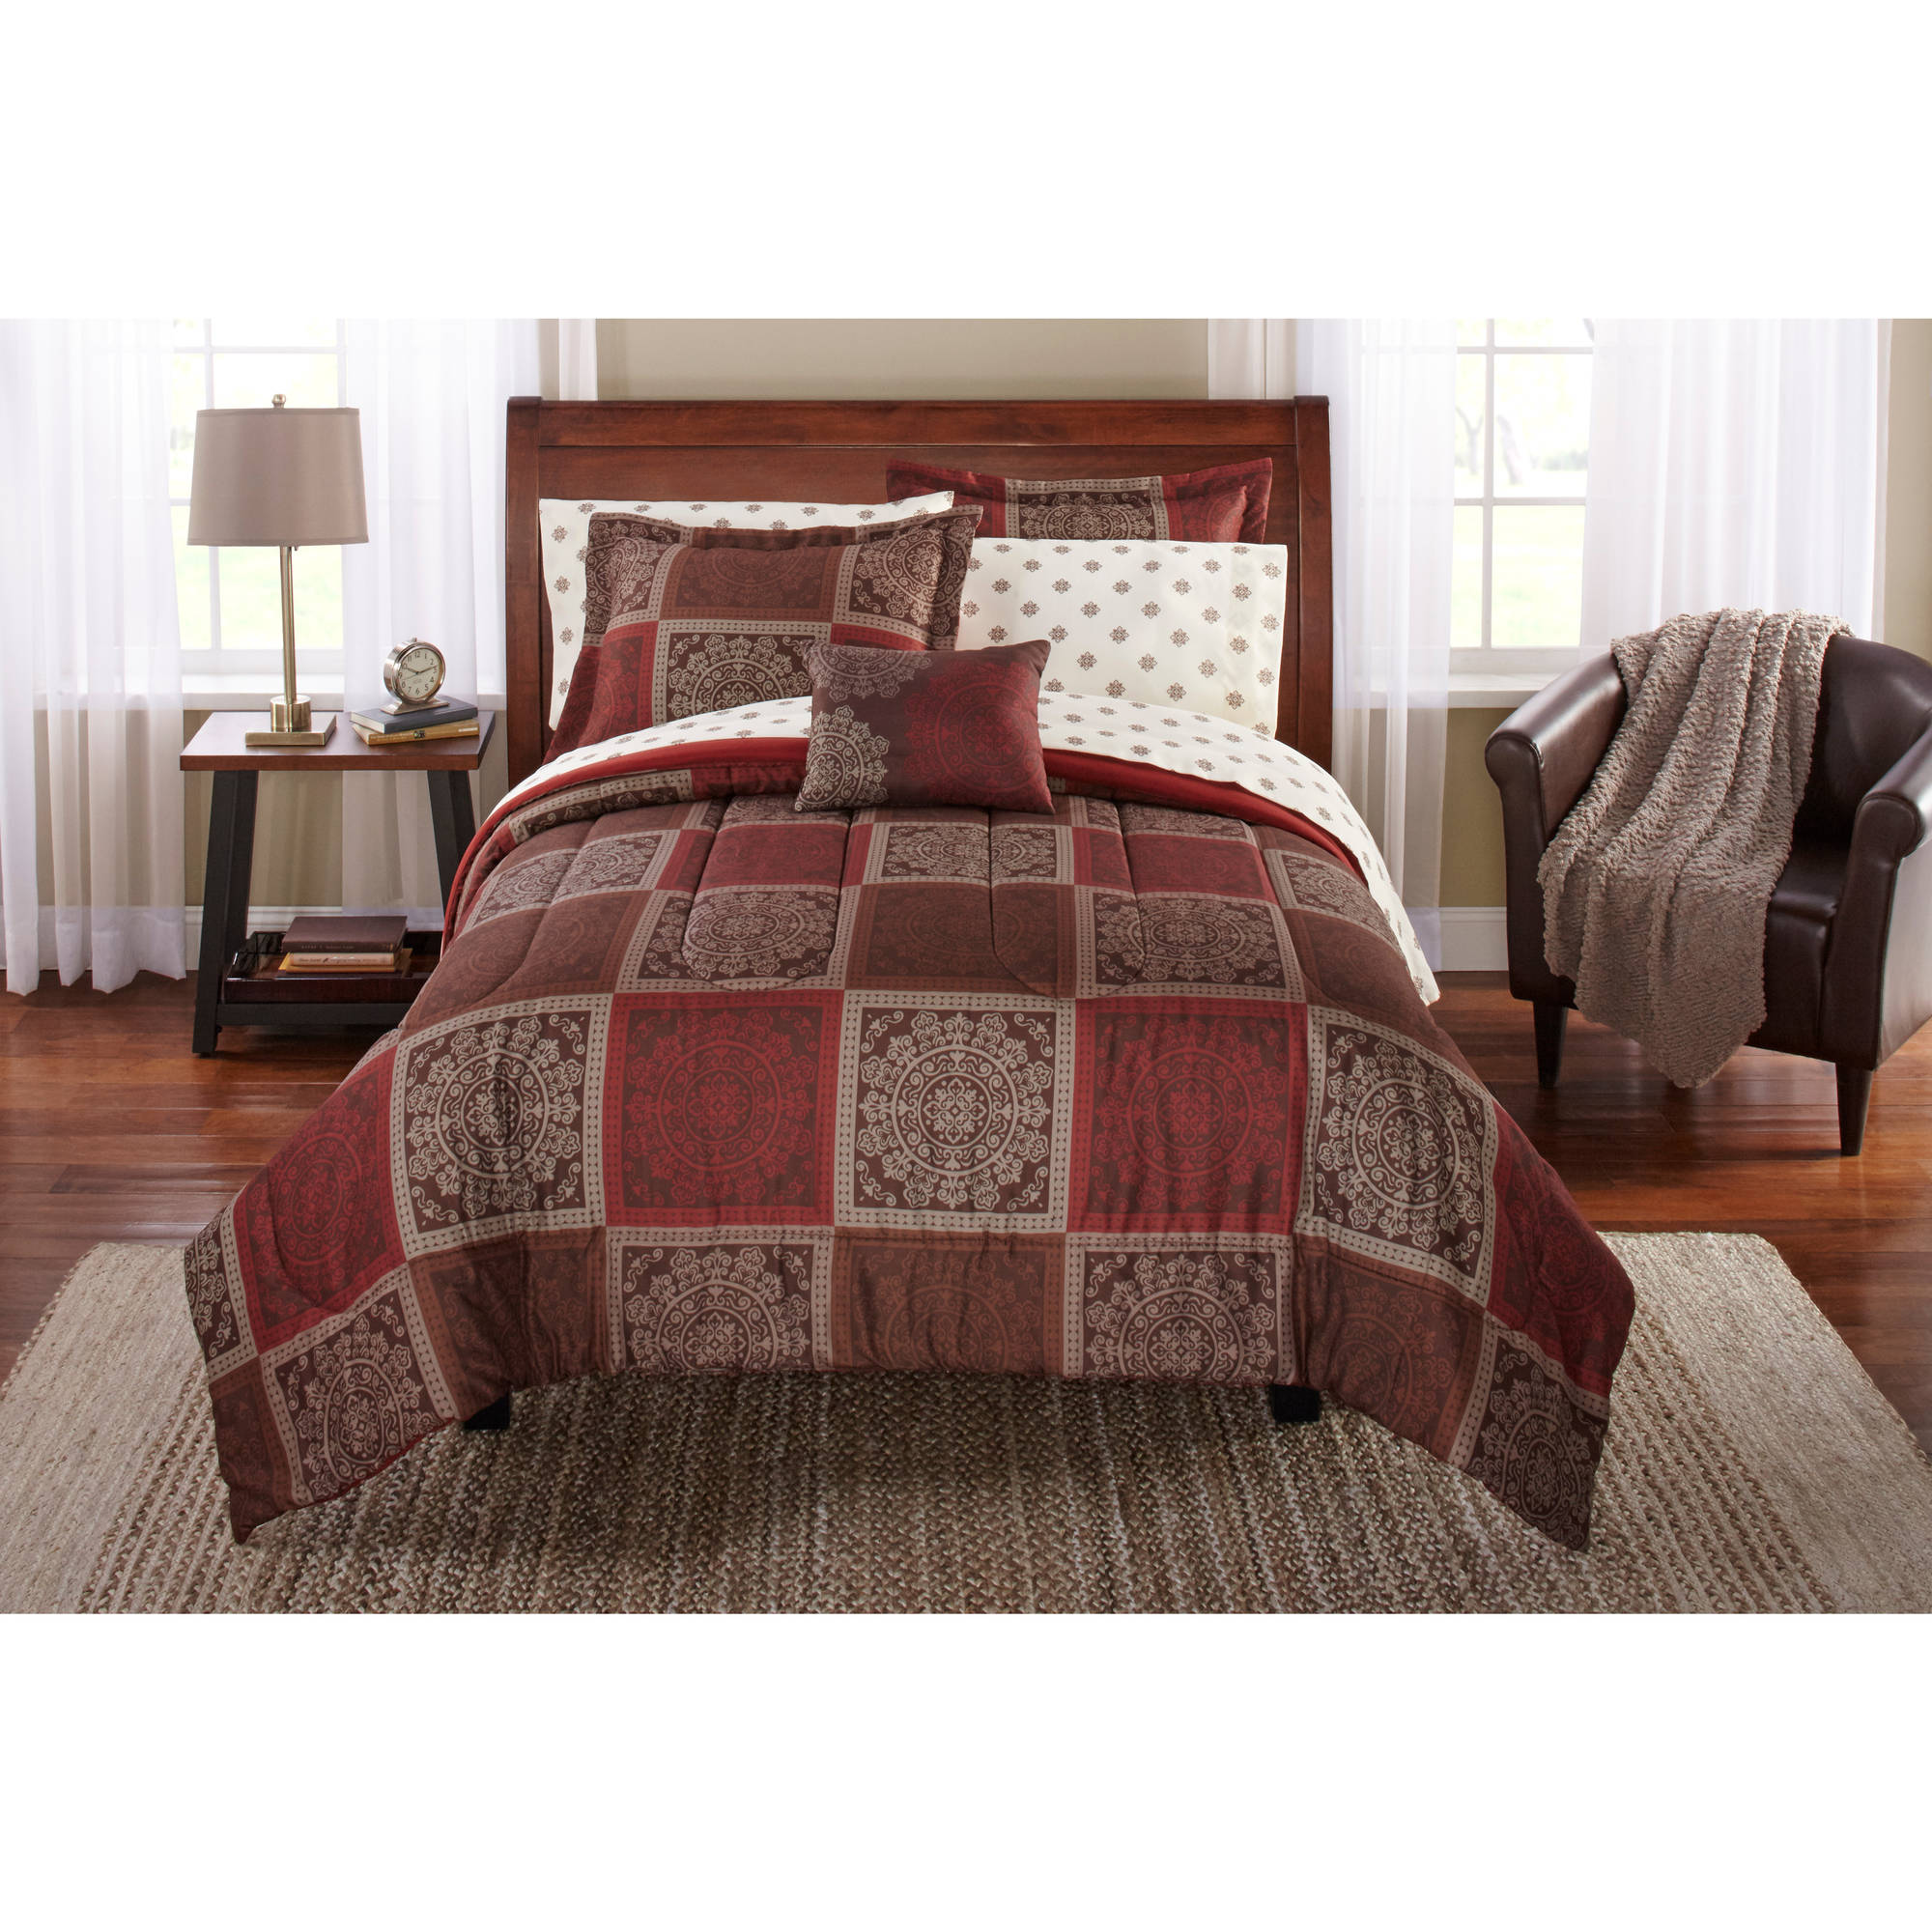 and country size bedding discount bedspread sets comforters bedroom full comforter red bedspreads queen